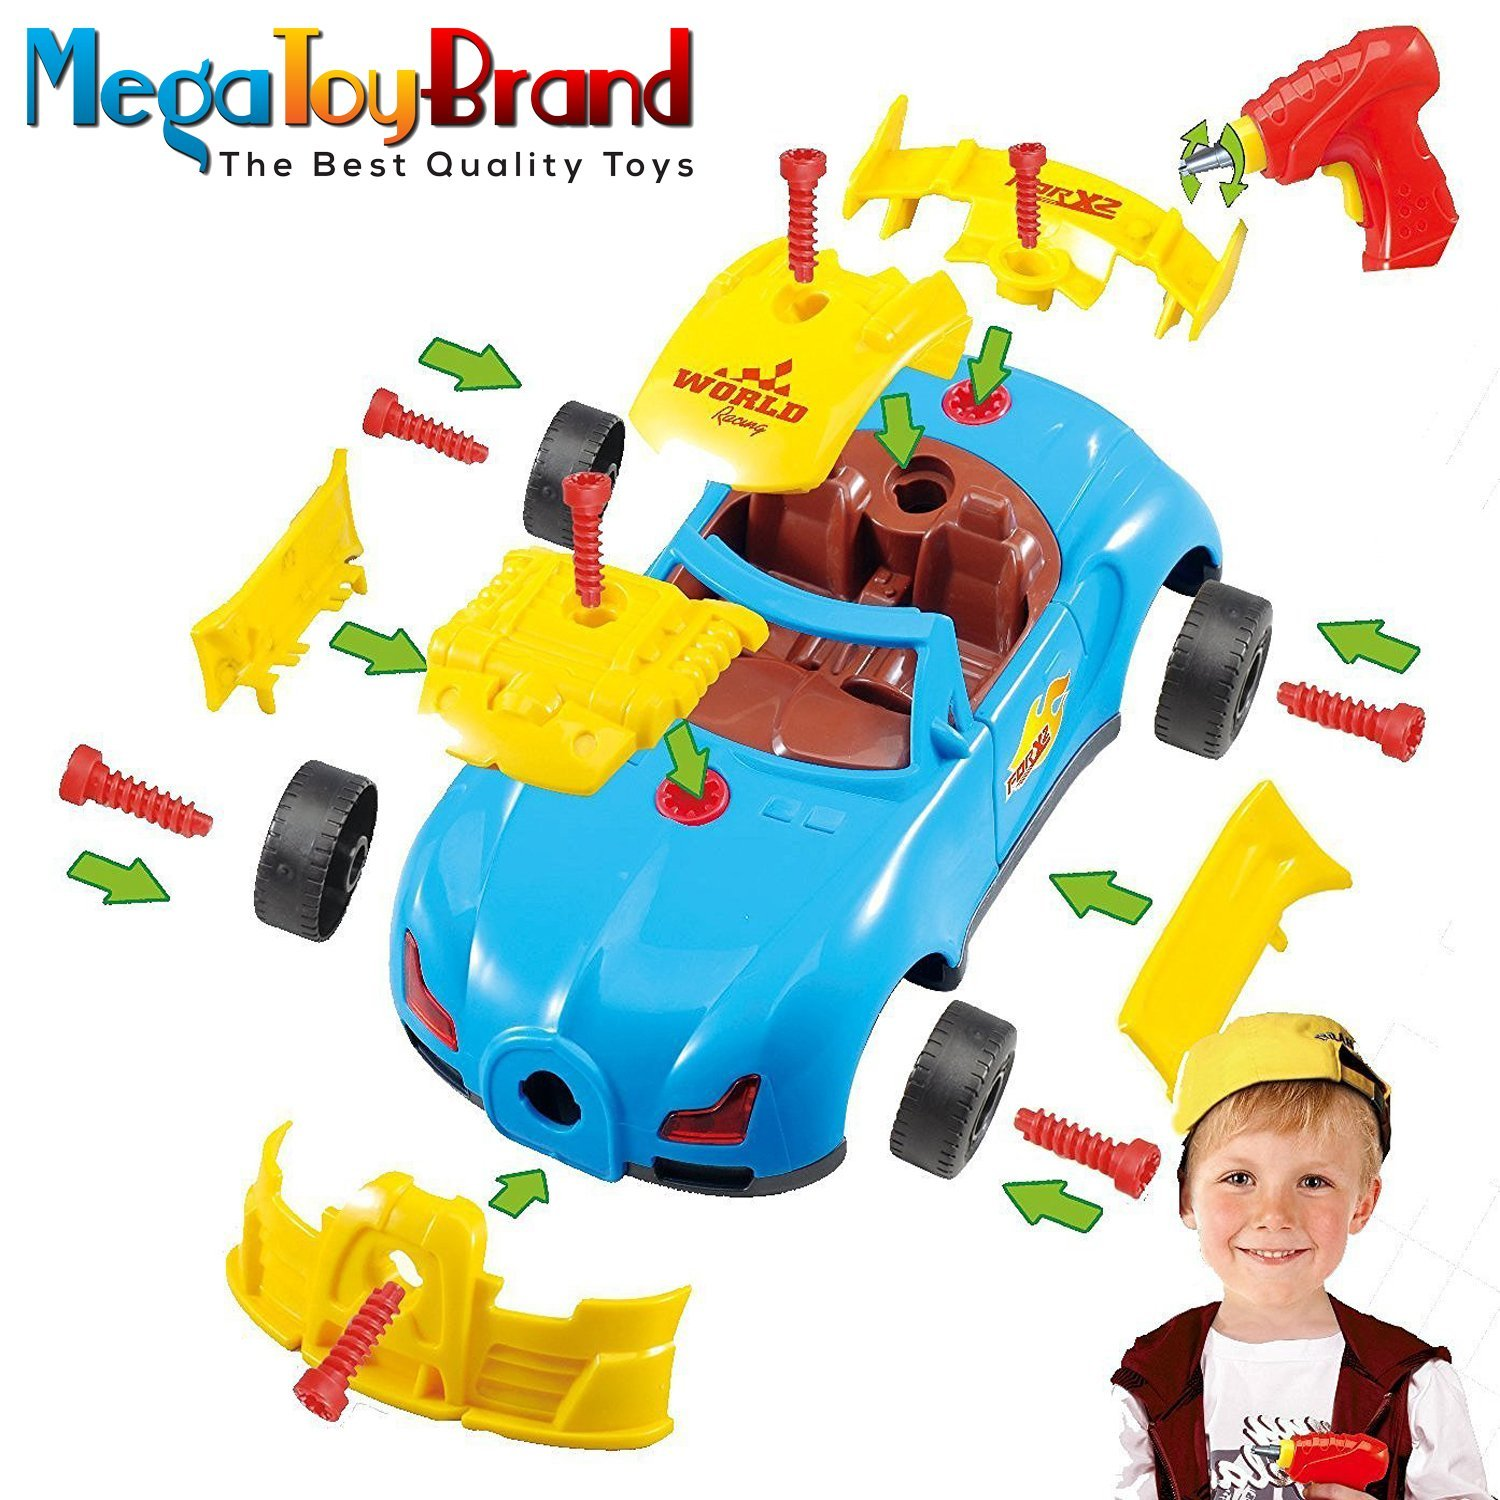 MegaToyBrand Racing Car Includes 30 Take Apart Pieces, Electric Tool Drill, Lights and Sounds